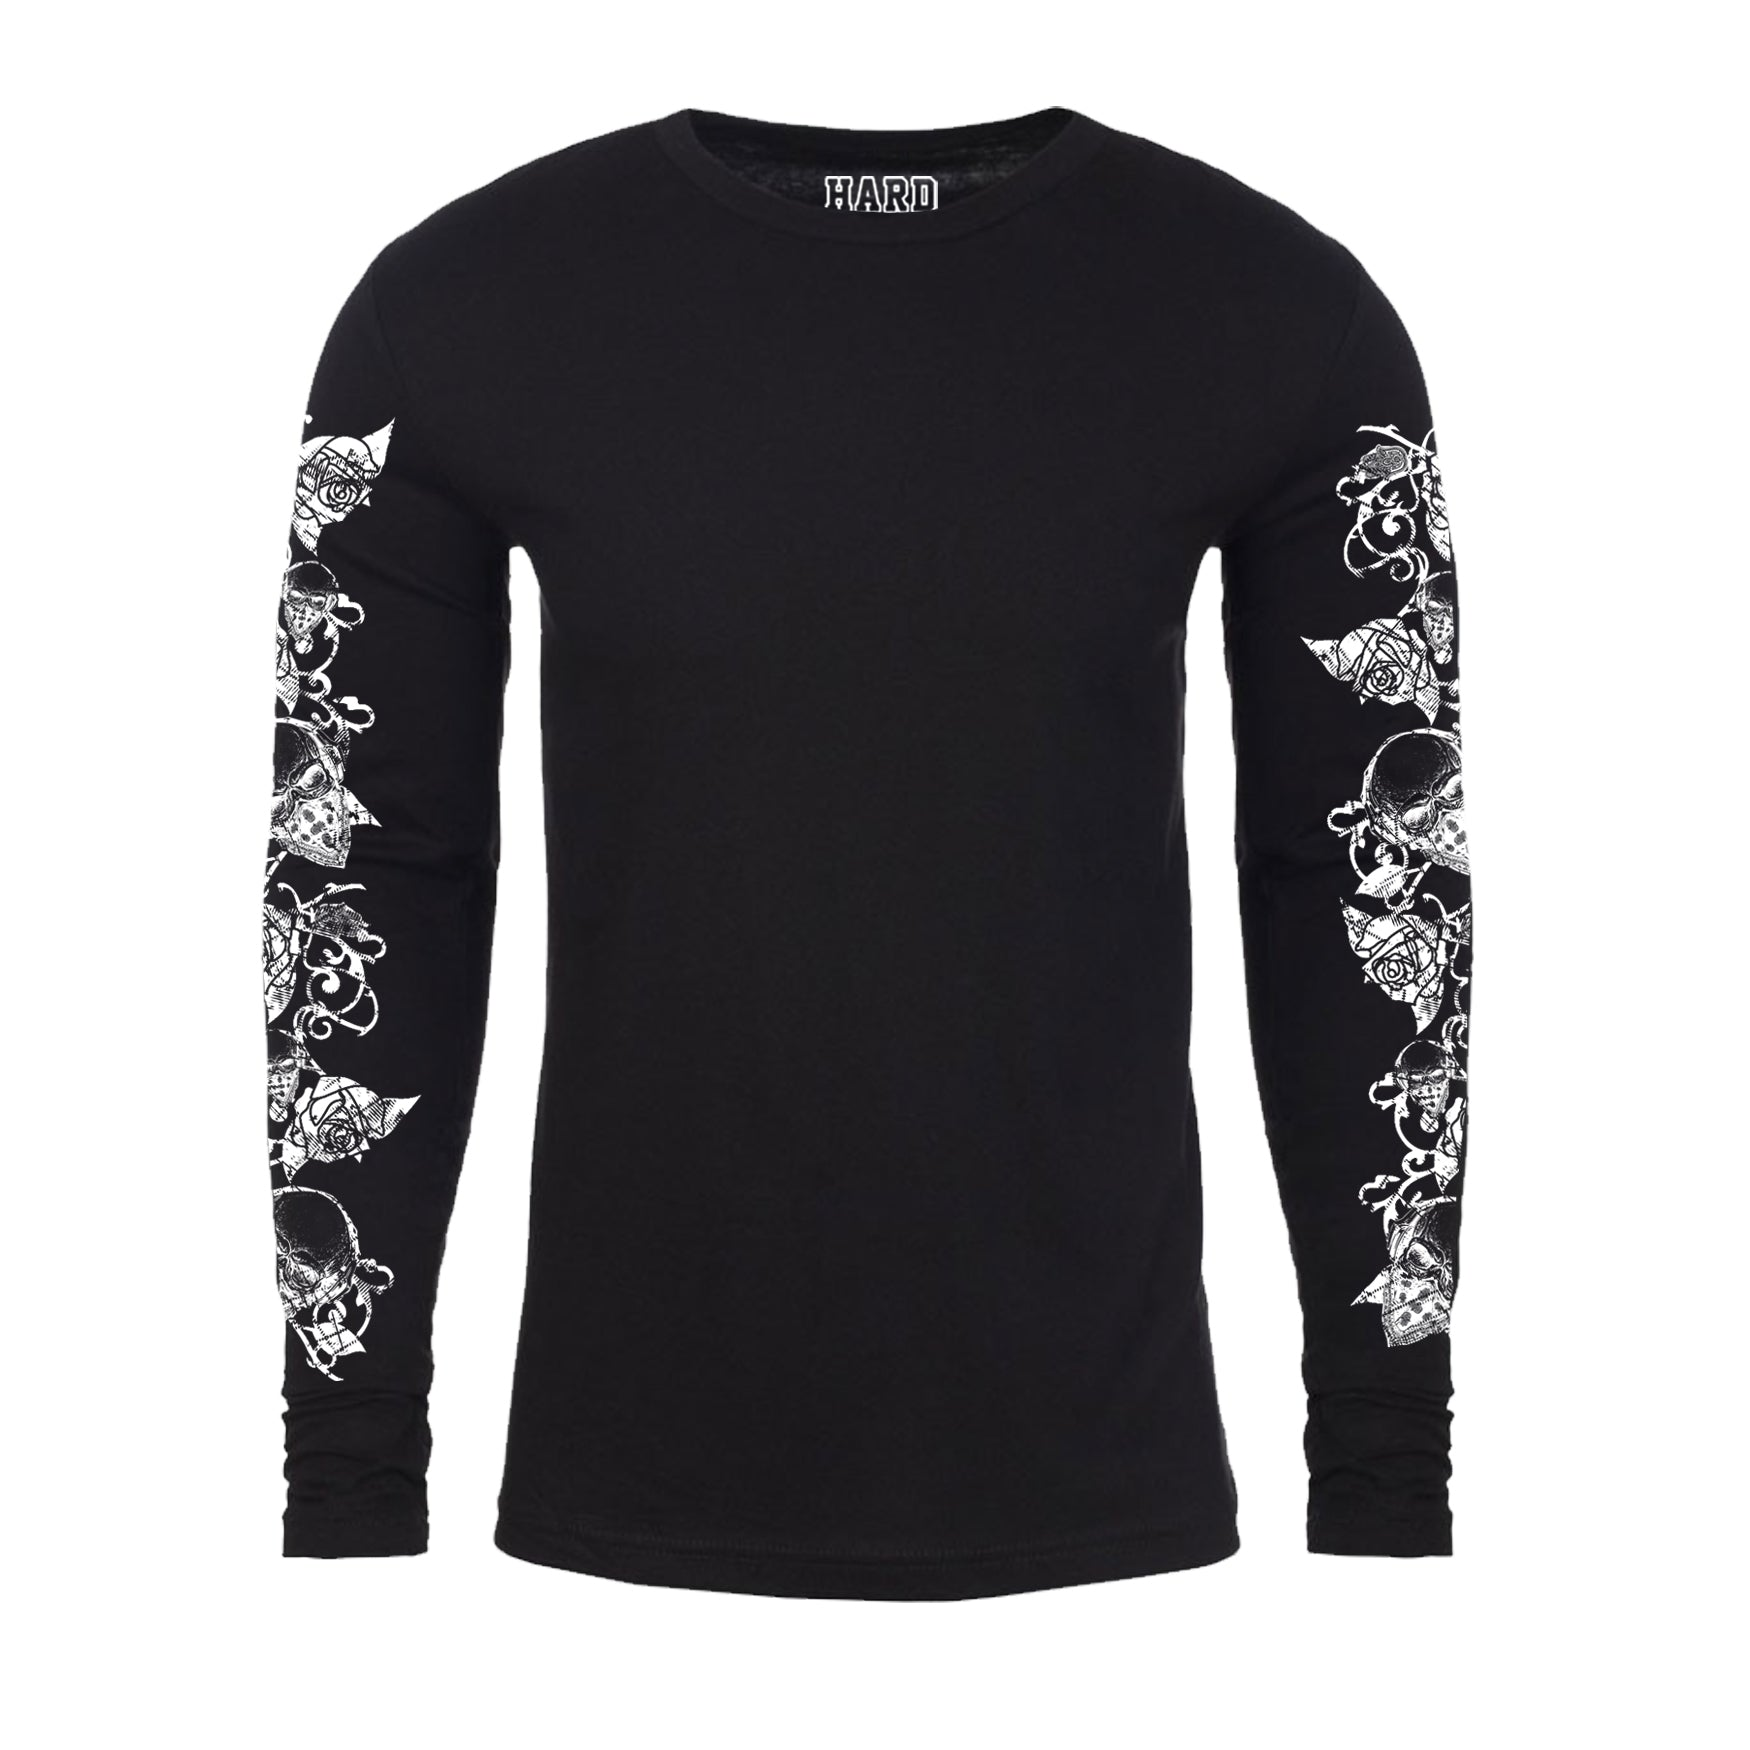 "MEN'S LAUNDERED COTTON LONG SLEEVE CREW  ""ROSE/BANDANA SKULLS"" PRINT Black"